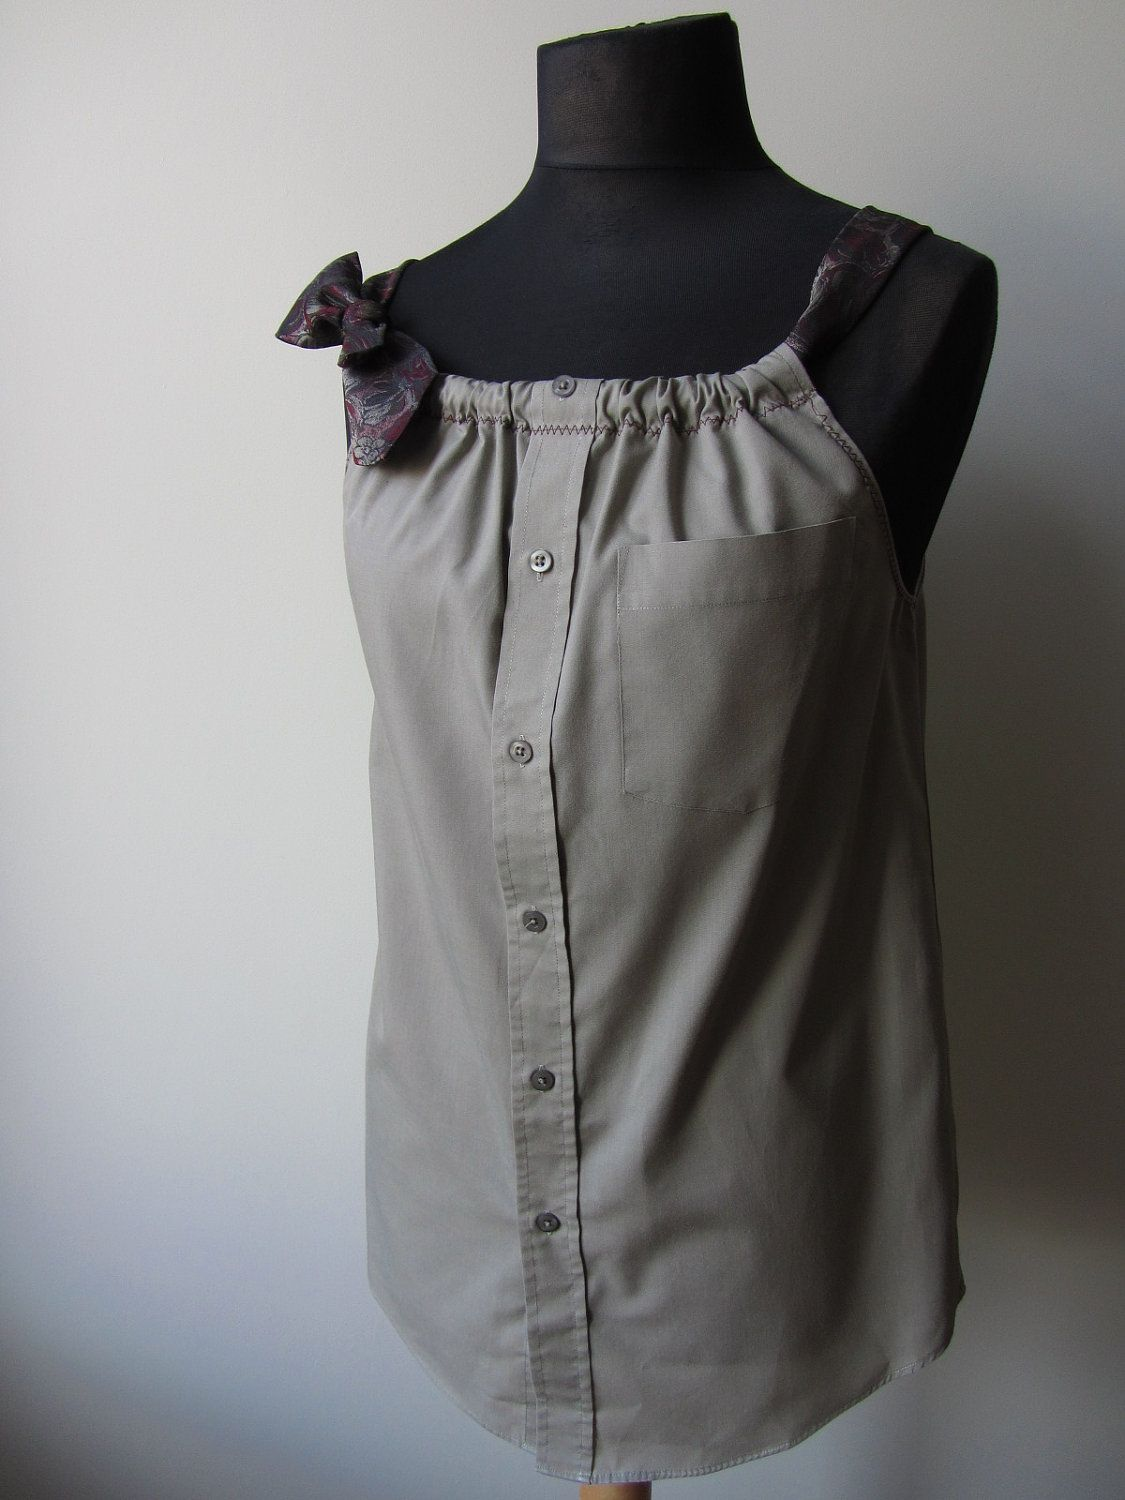 Upcycled Clothing - Boyfriend Tank Top in Dark Beige with Two Changeable Necktie Shoulder Straps